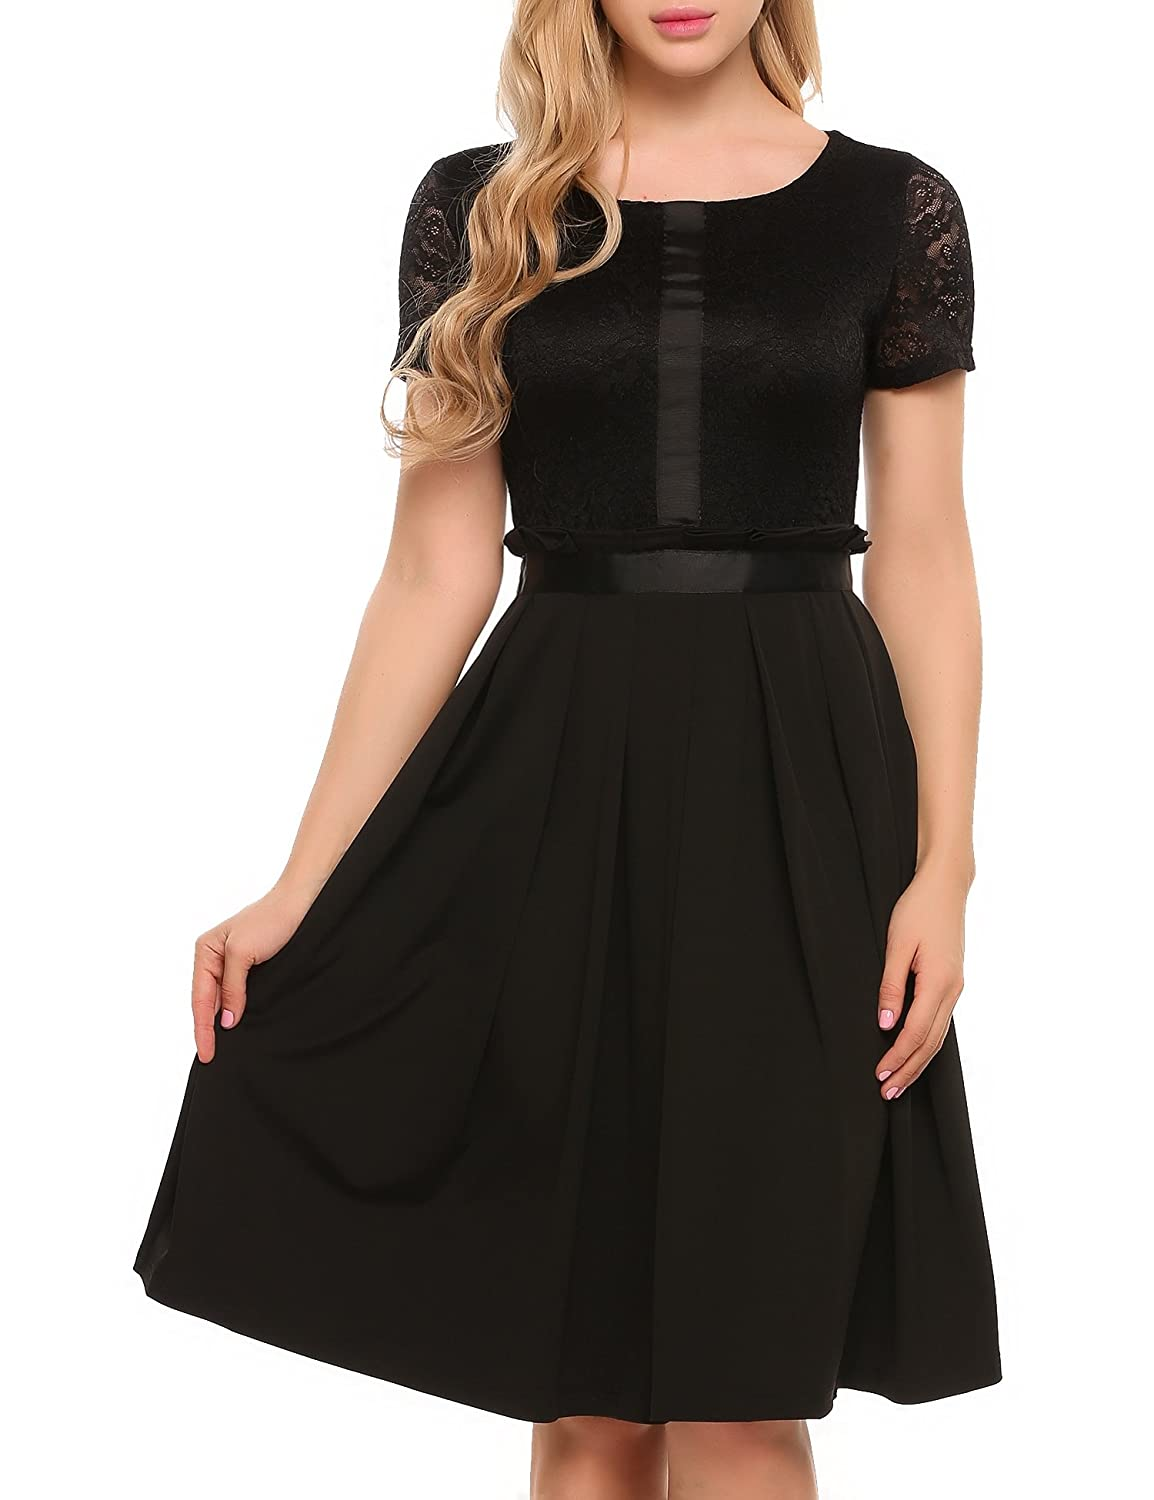 4f7a64871a3 Top 10 wholesale Black Lace Dress Midi Length - Chinabrands.com